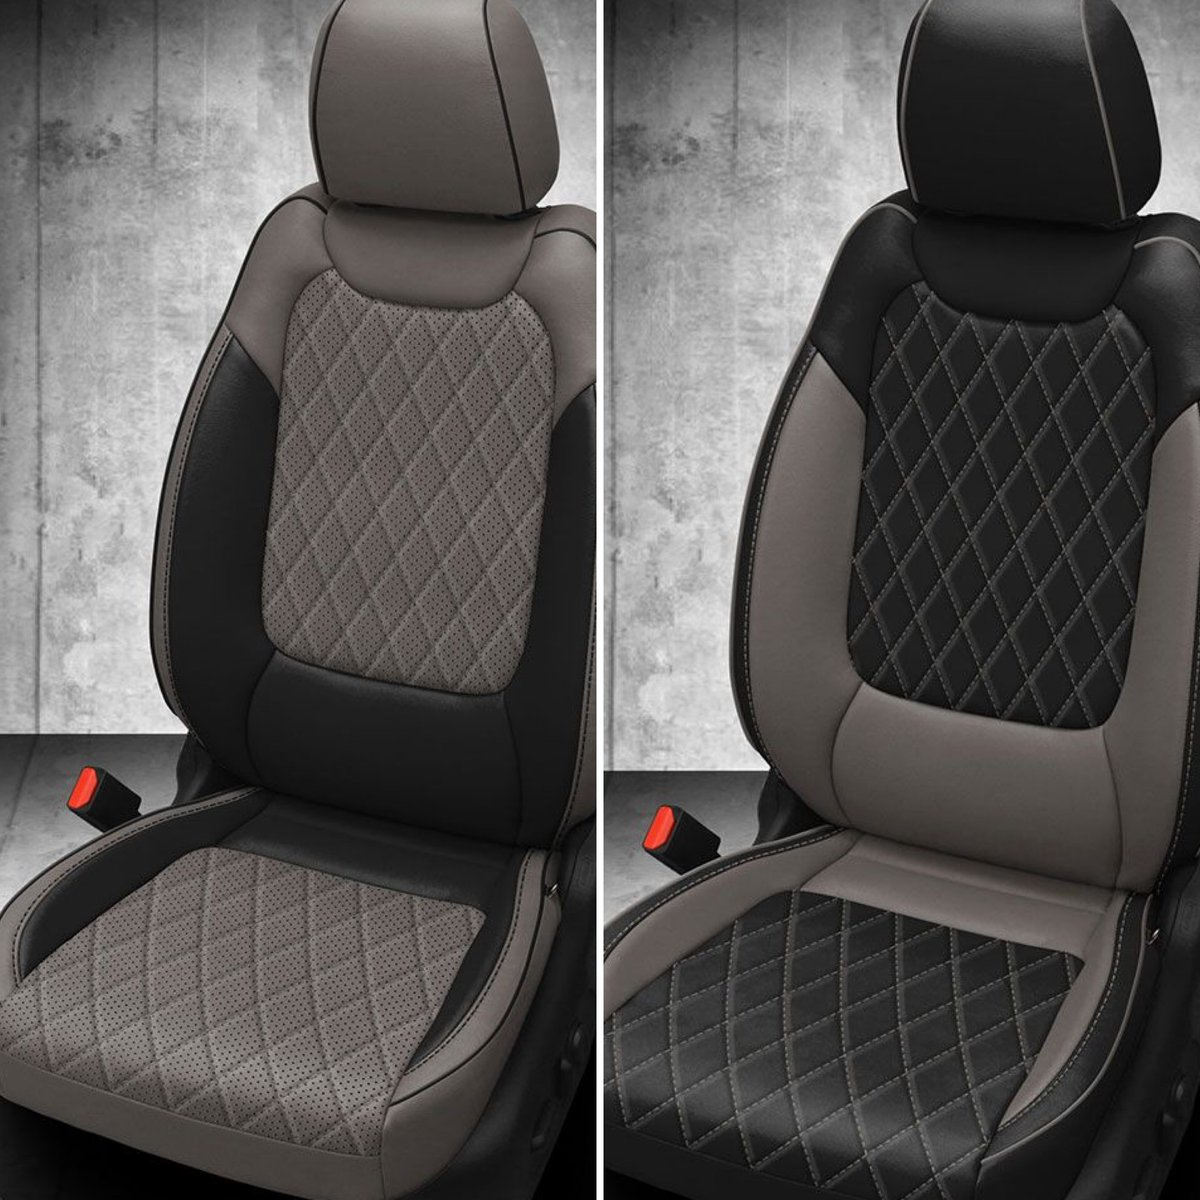 Hmm, similar but different...do you prefer the left or right?  Interested in Katzkin or have questions? Give us a call at 877-811-8840!  #custominterior #katzkin #katzkinleather #leatherupgrade #carupgrade #becauseclothsucks #leatherisbetter #loveyourdrive #carupholstery https://t.co/TifI8pRa4u